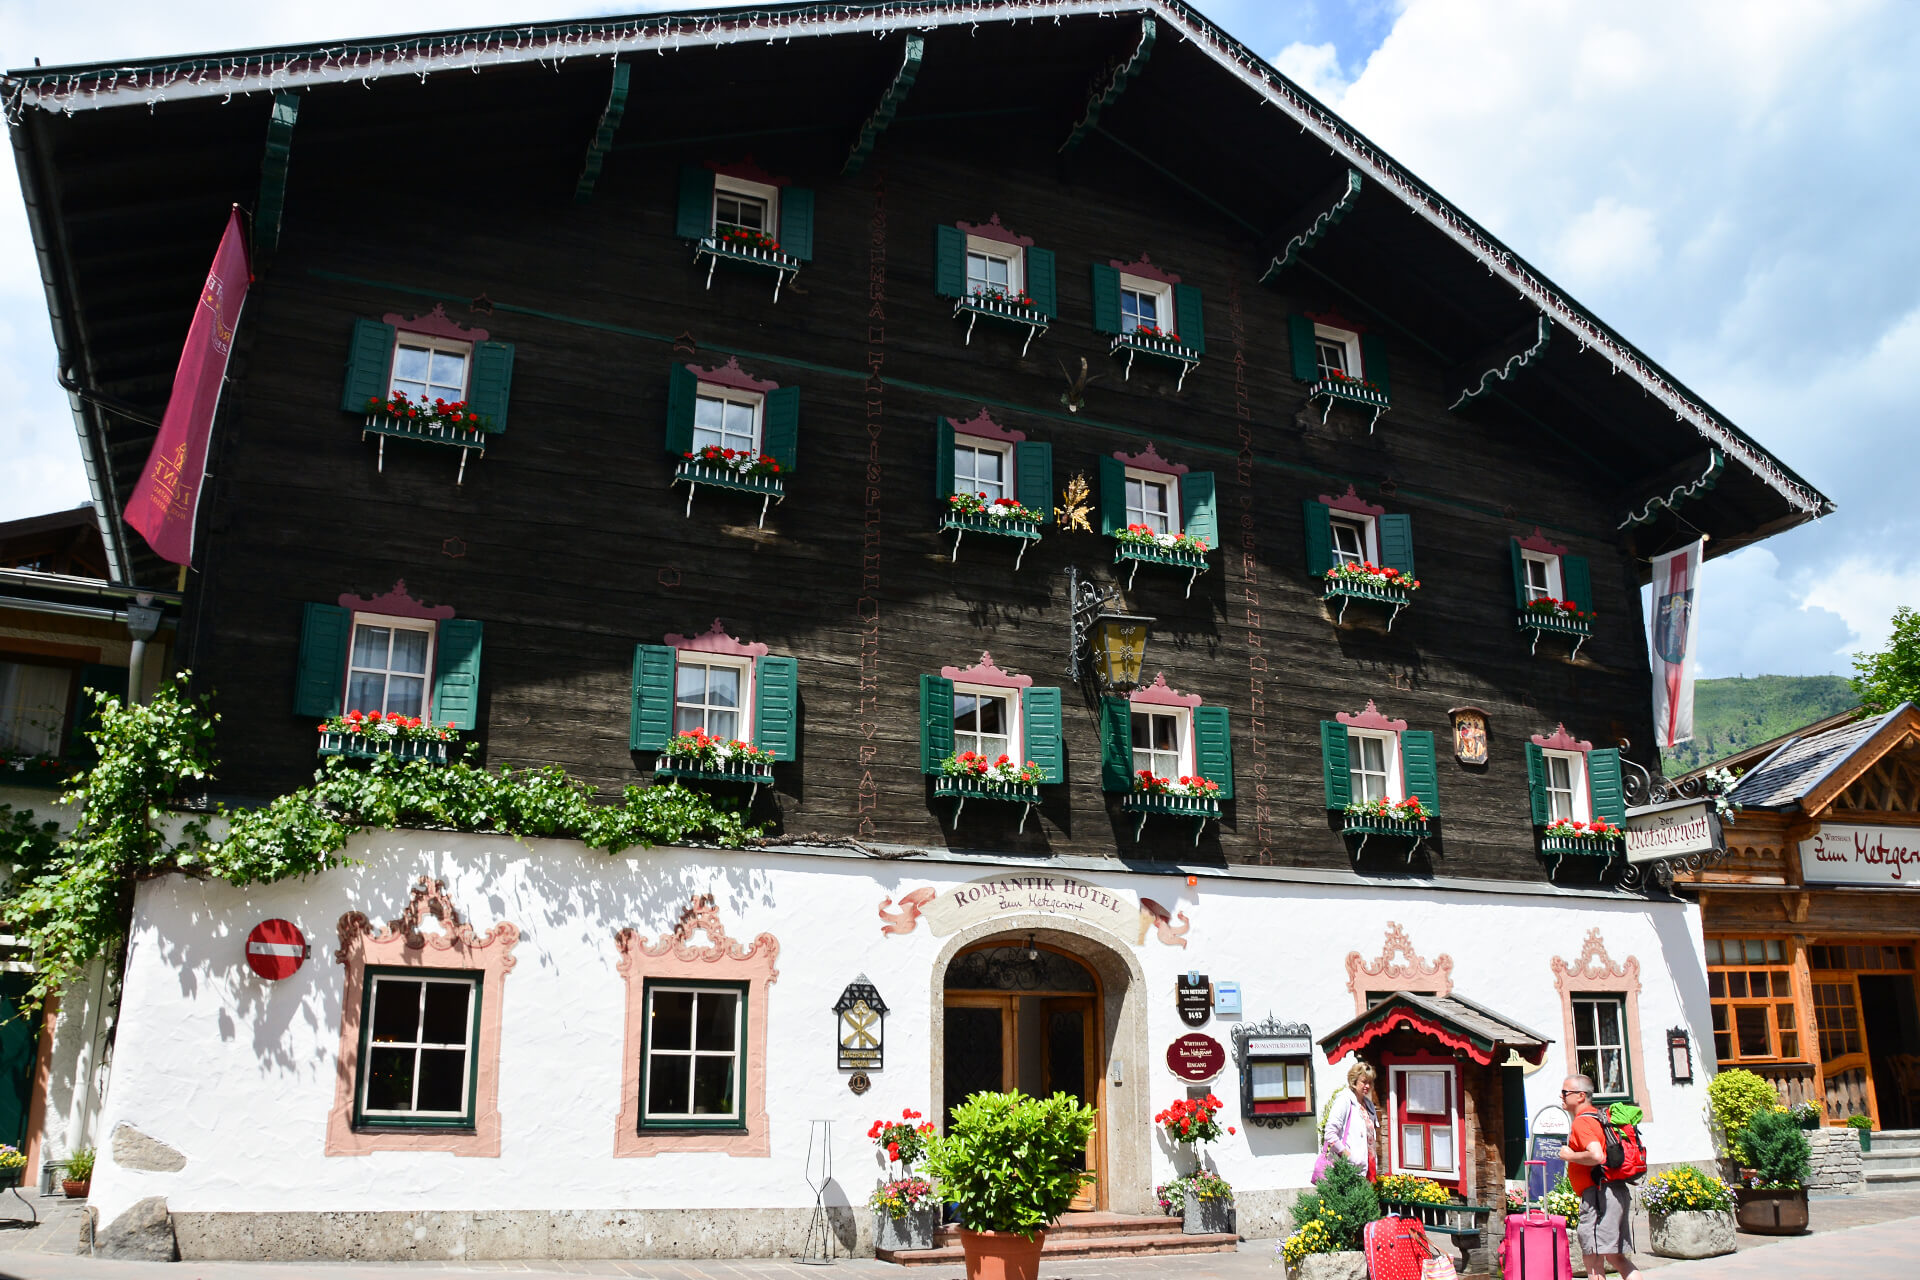 Bemaltes Haus in Zell am See